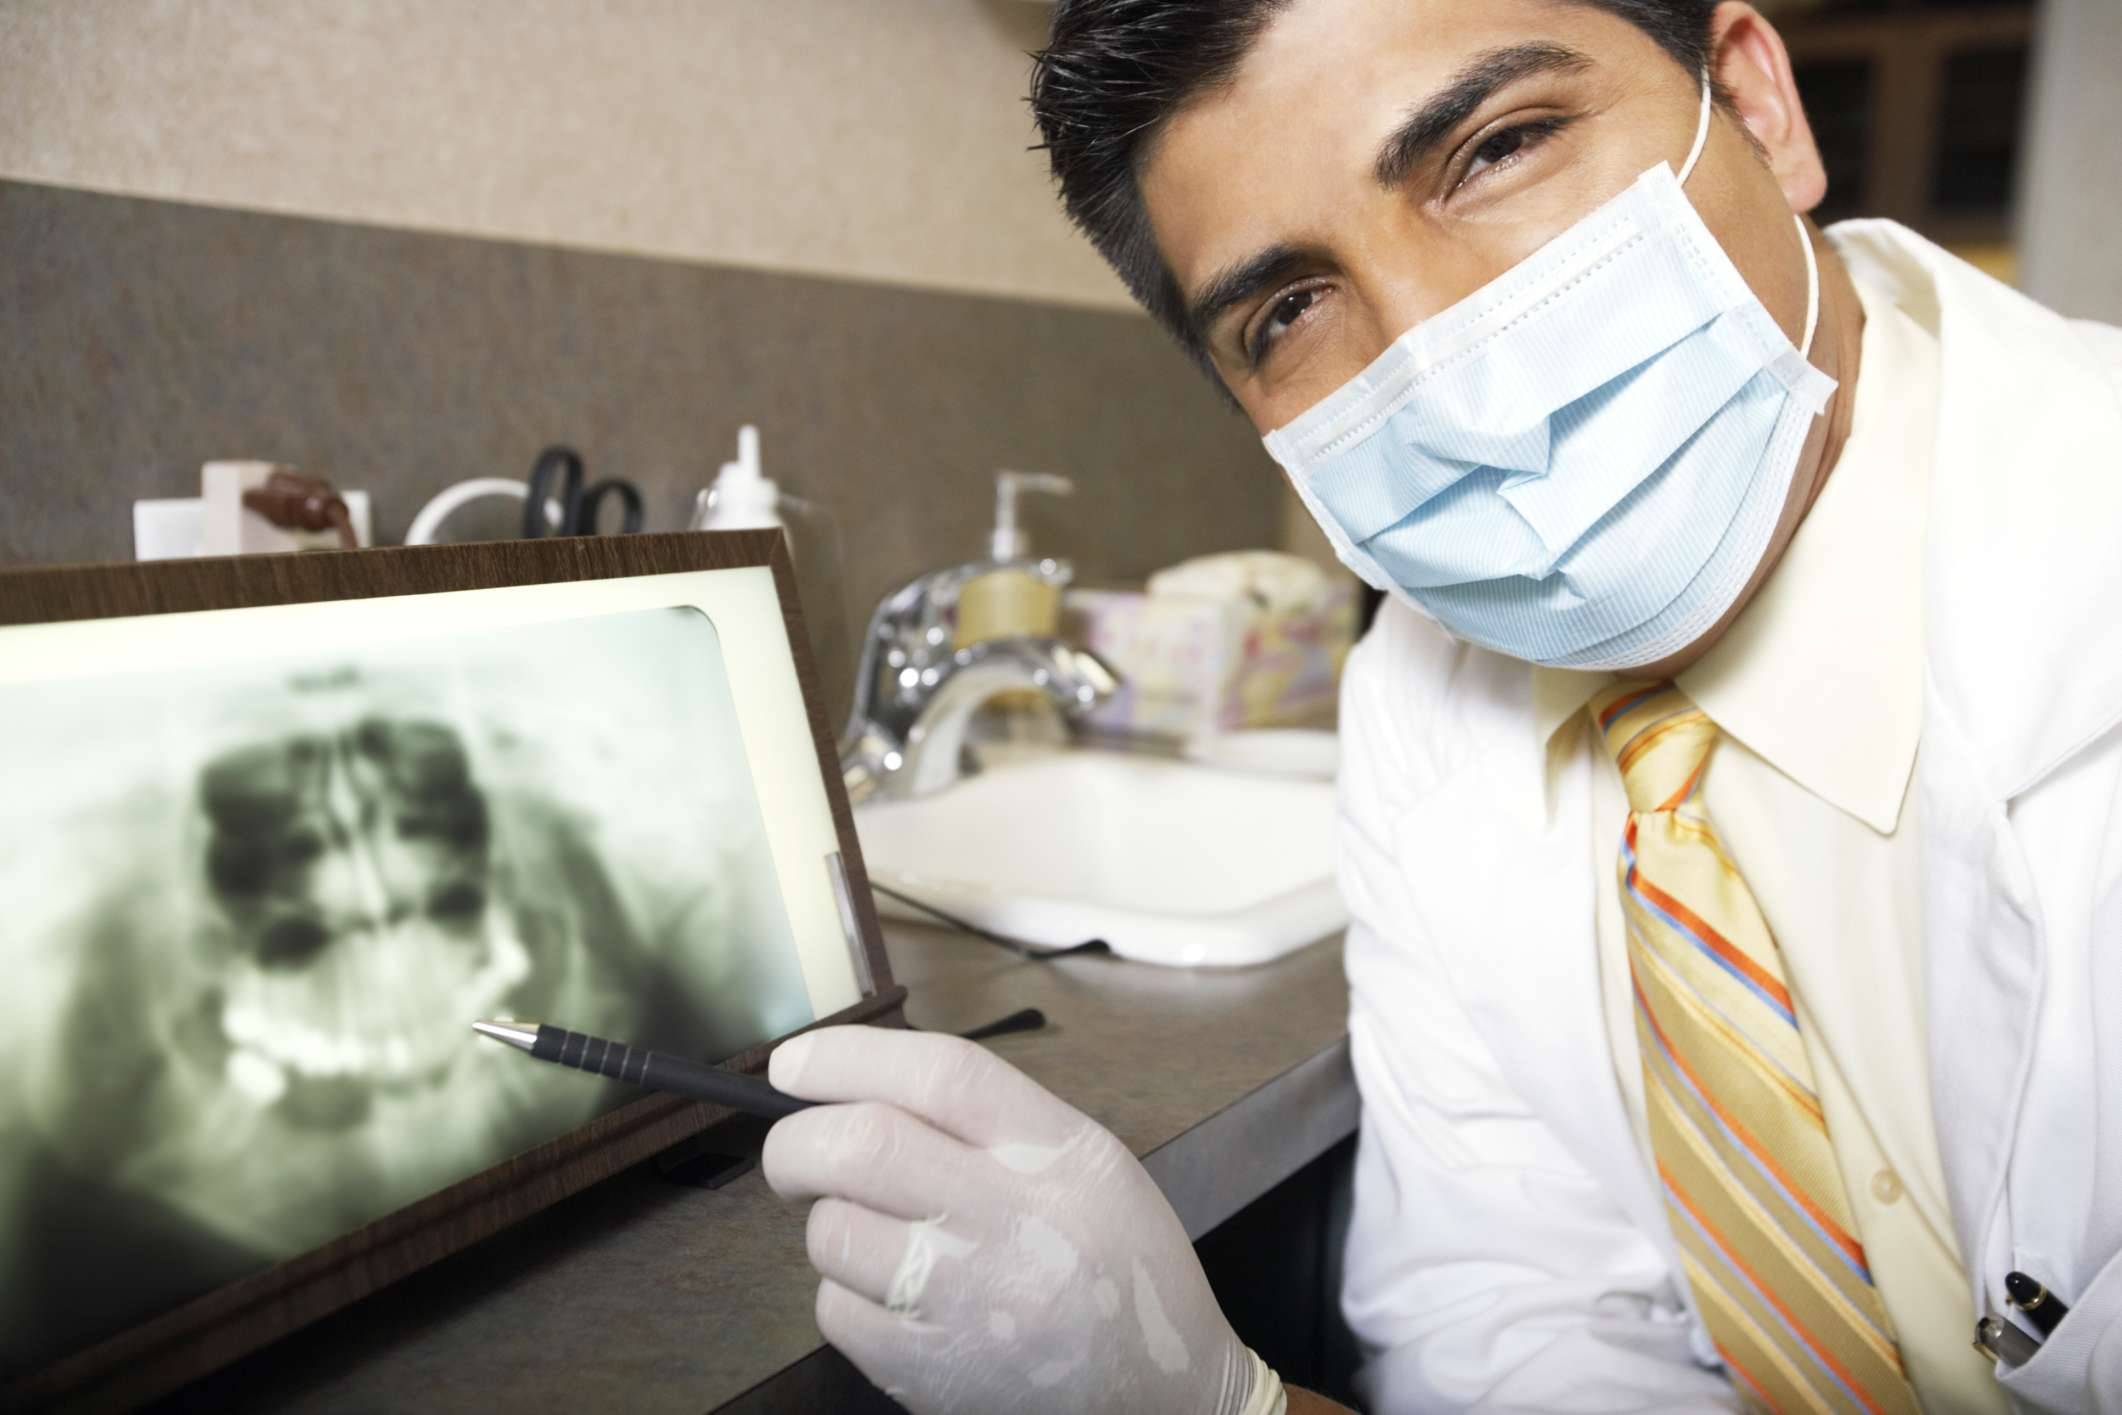 salud bucal dentista Foto: Fuse/ThinkStock